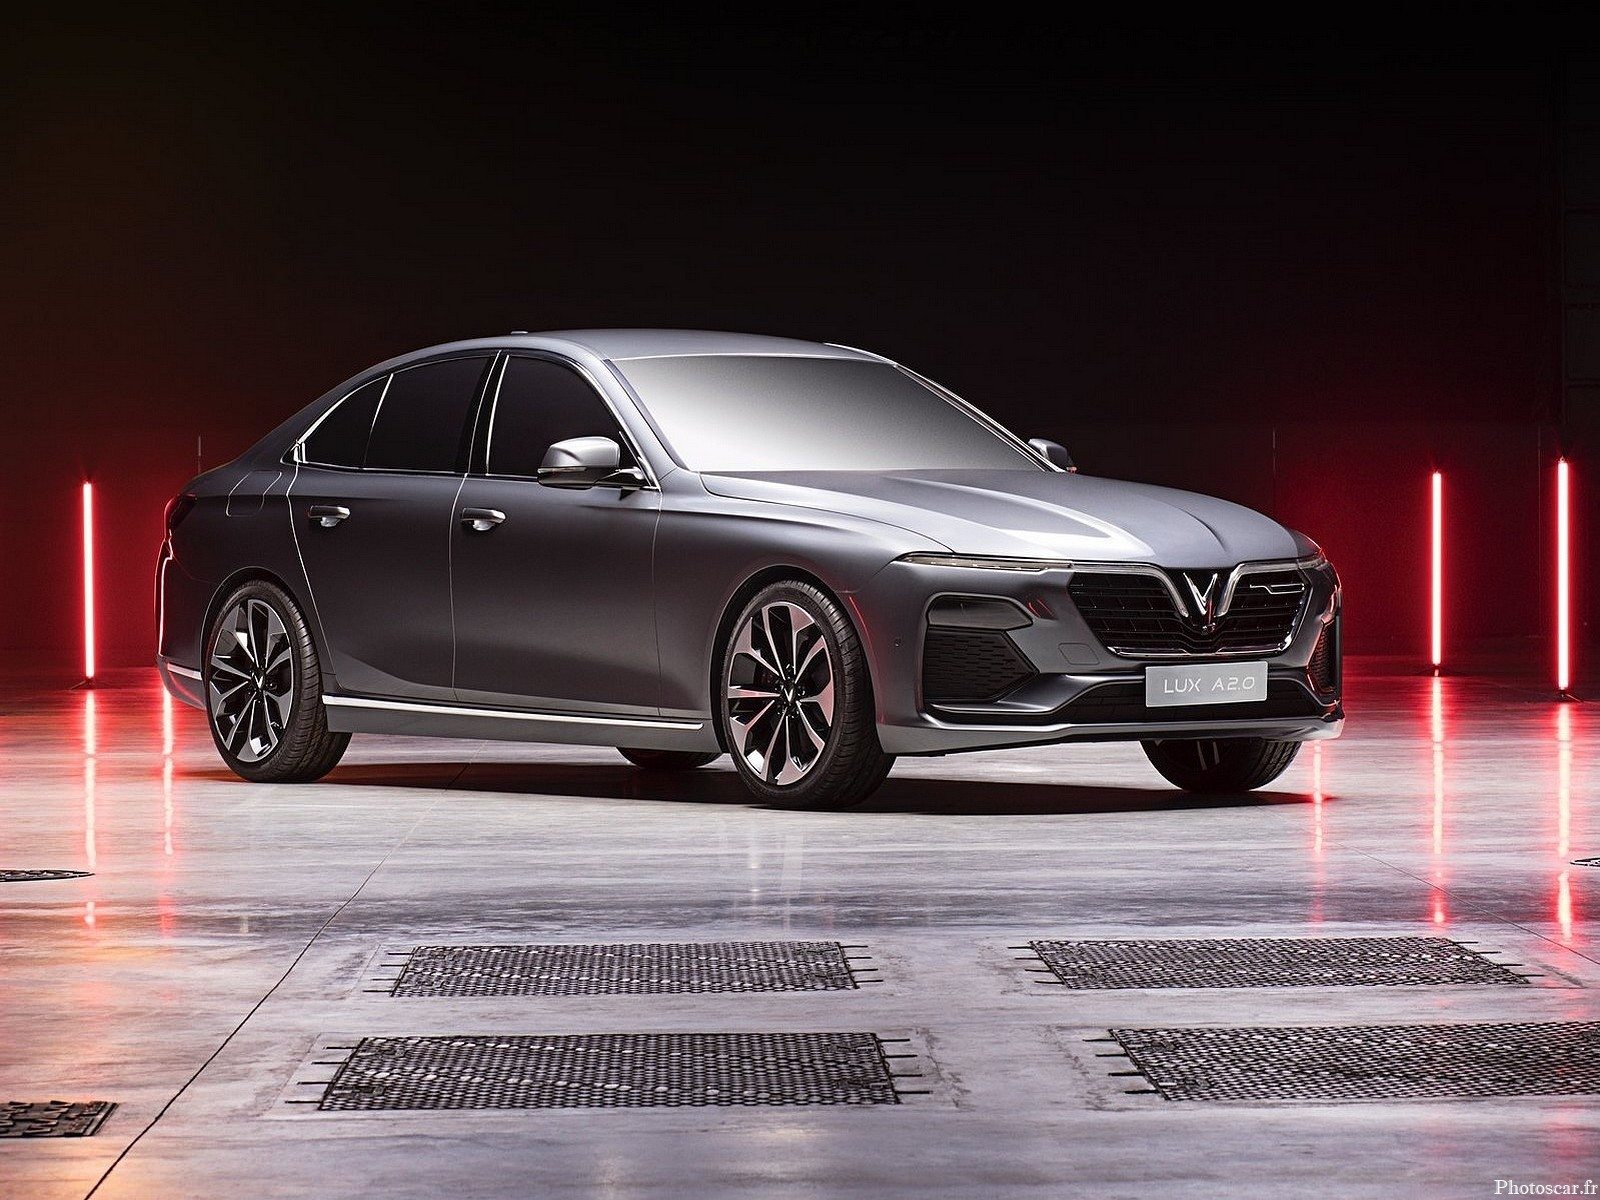 VinFast LUX A2.0 Sedan 2020